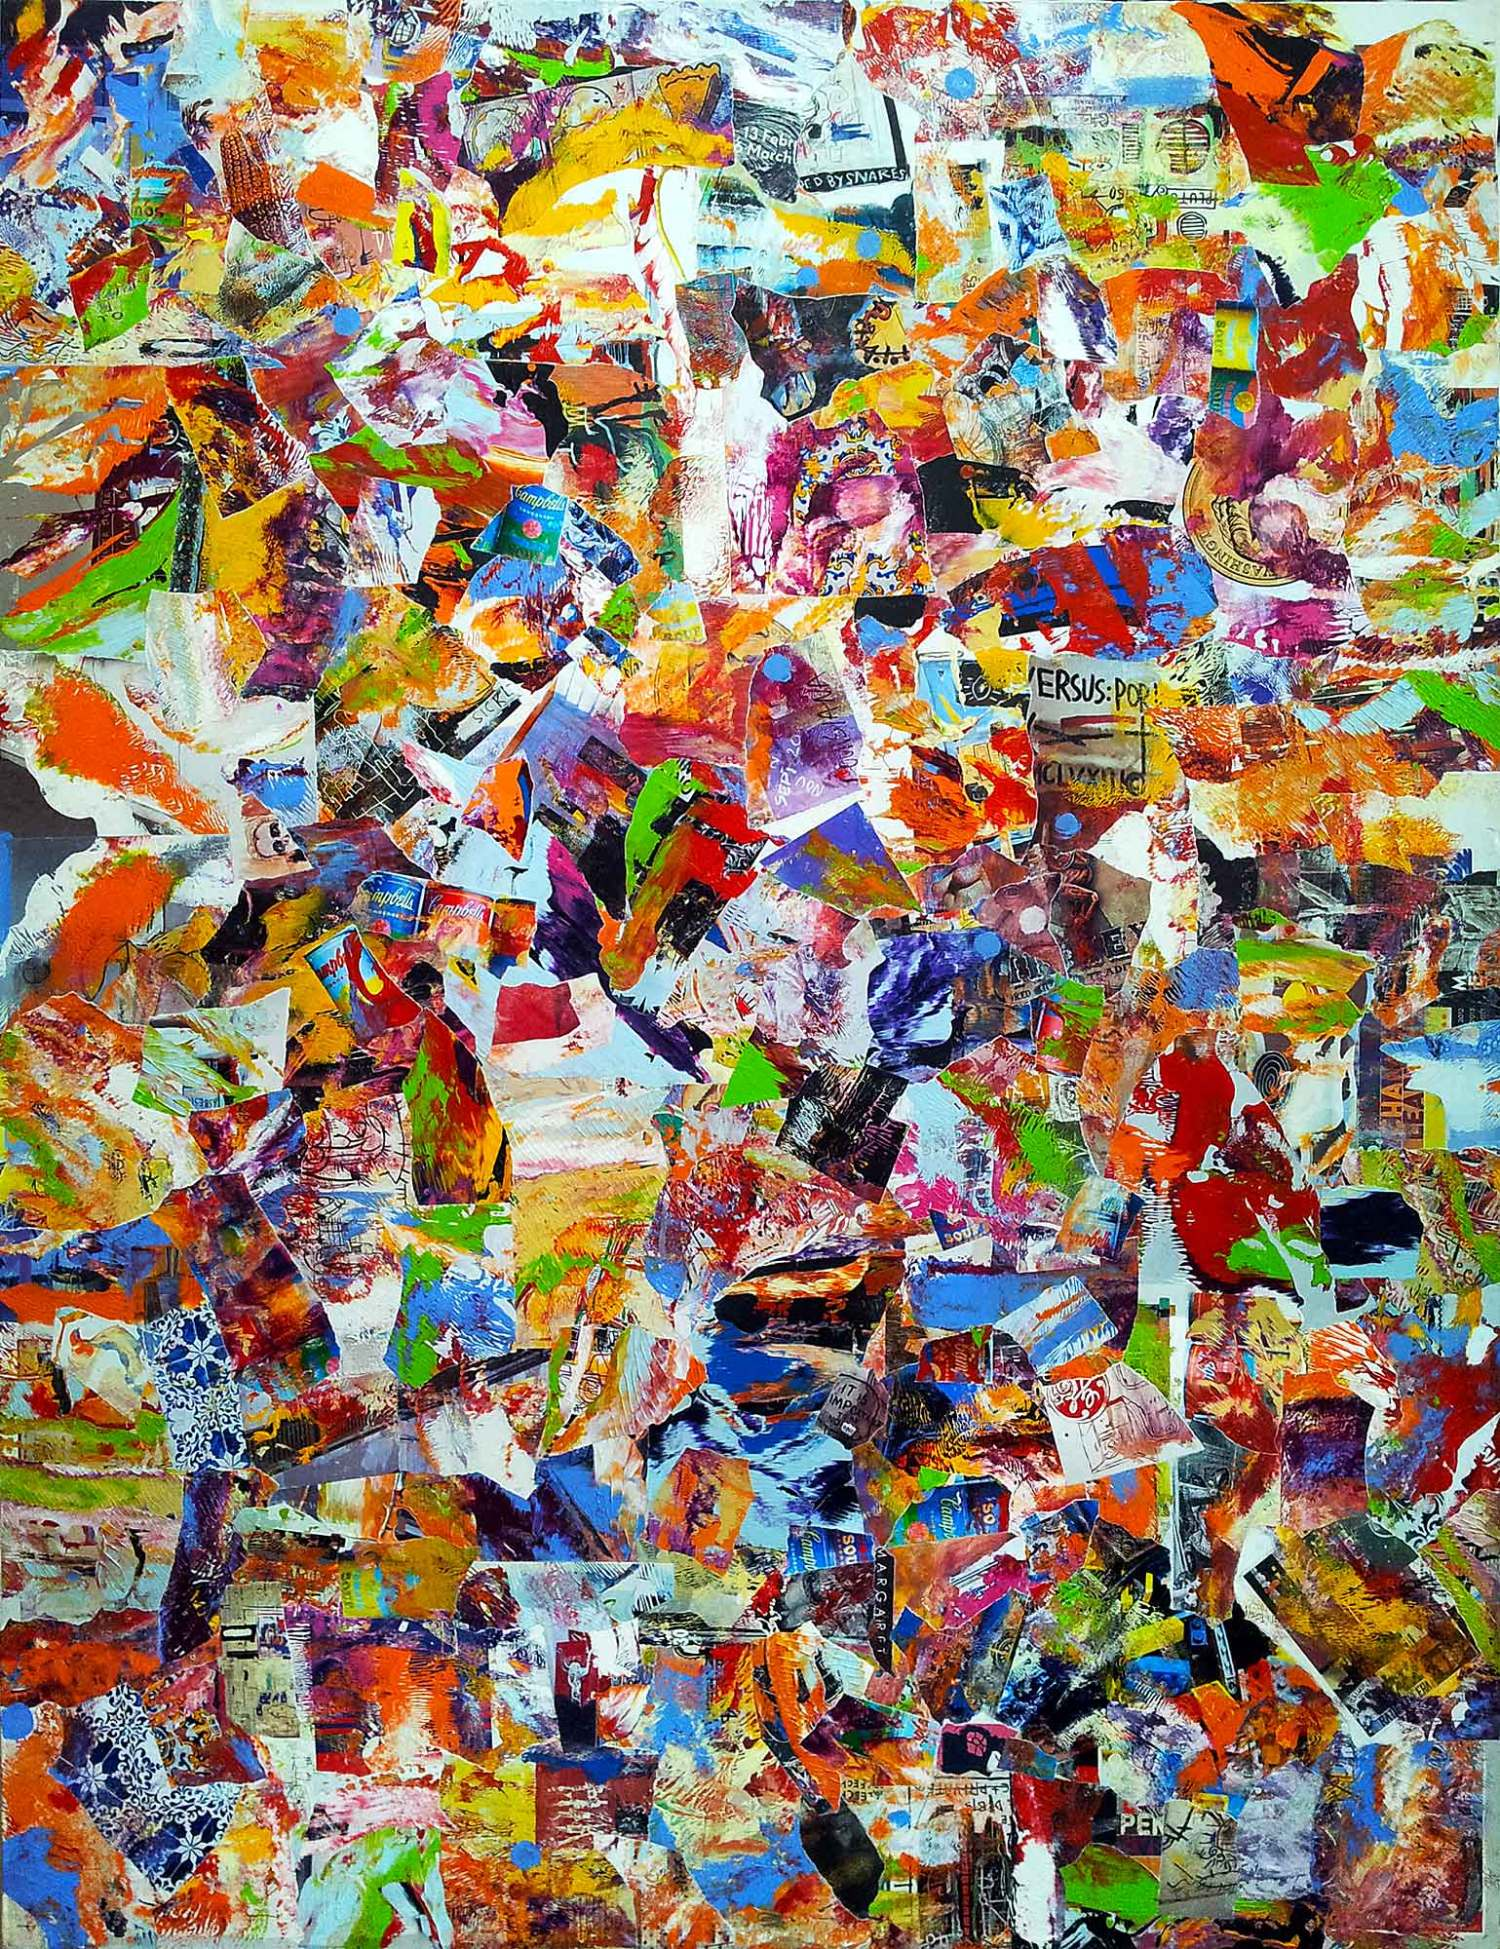 eu faço samba e amor até mais tarde - 150 x 115 cm - acrylic and mixed media on inkjet printings and art catalog pages, mounted on canvas - 2015